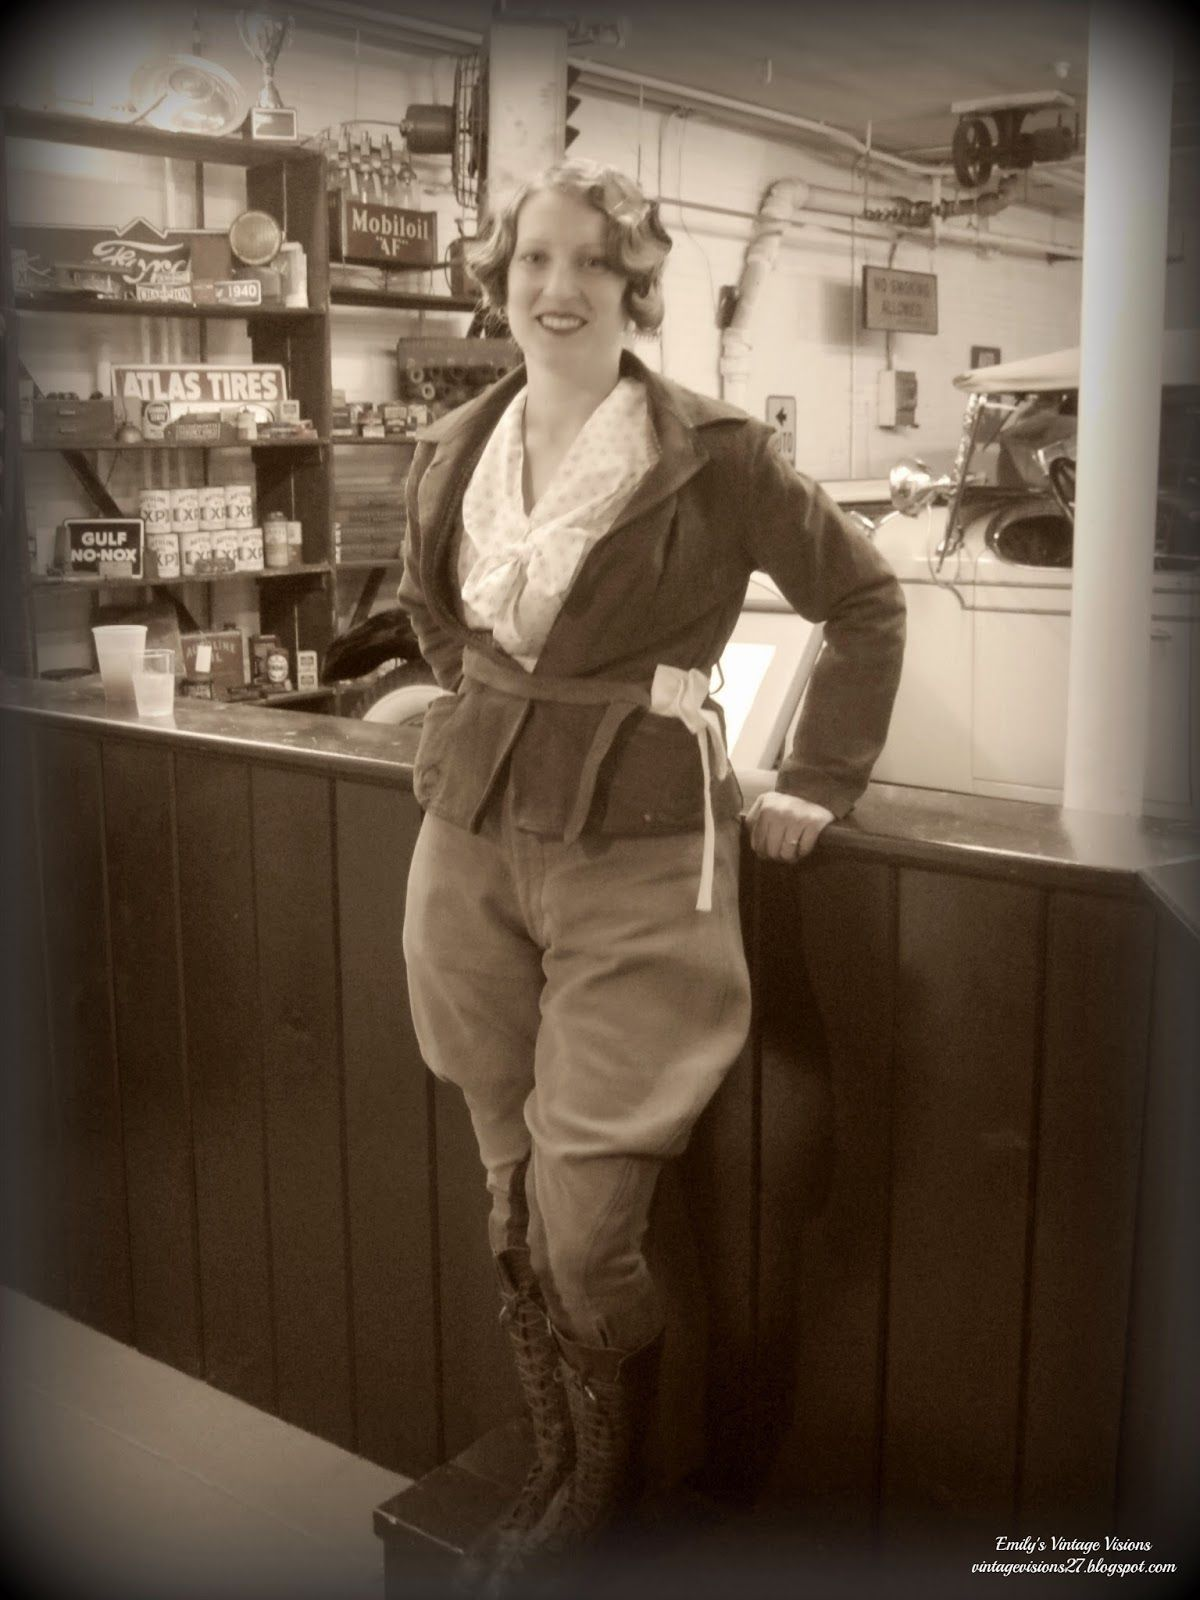 My Blog Verwandt Mit Lightning: Beatrice Shilling Meets Amelia Earhart. See More Photos On